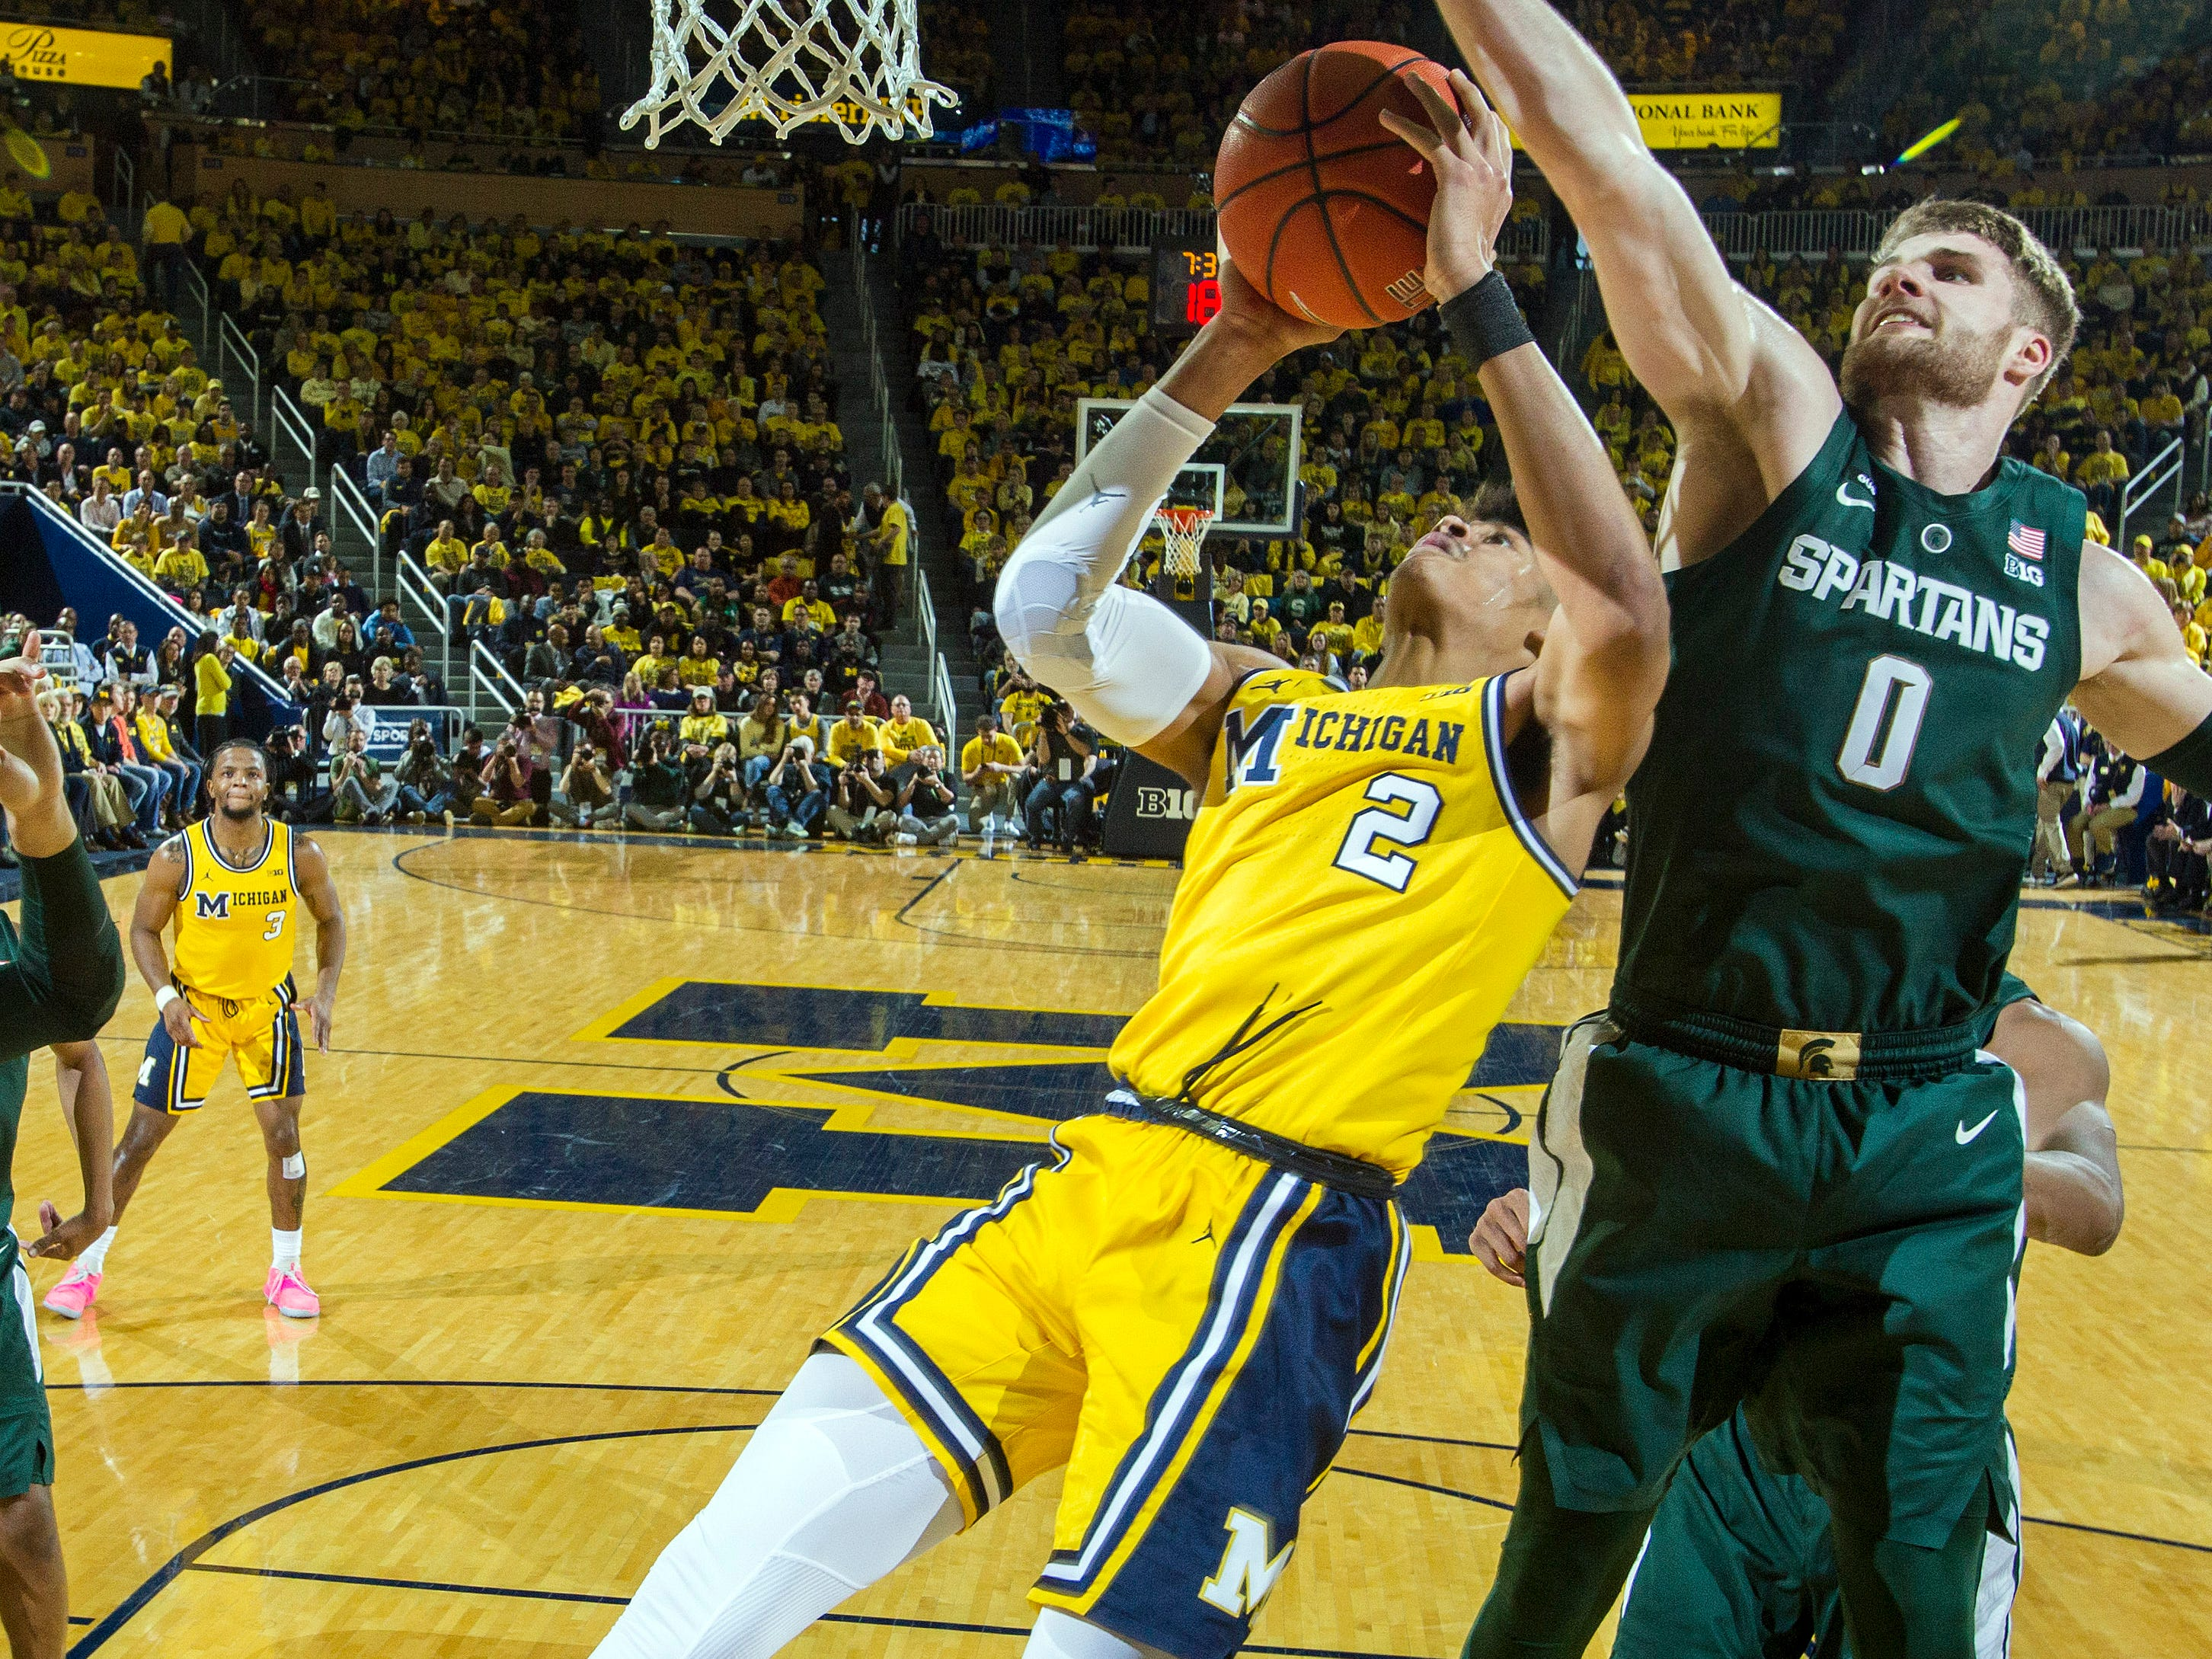 Michigan guard Jordan Poole (2) has his shot-attempt blocked by Michigan State guard Kyle Ahrens (0) in the first half of an NCAA college basketball game at Crisler Center in Ann Arbor, Mich., Sunday, Feb. 24, 2019.